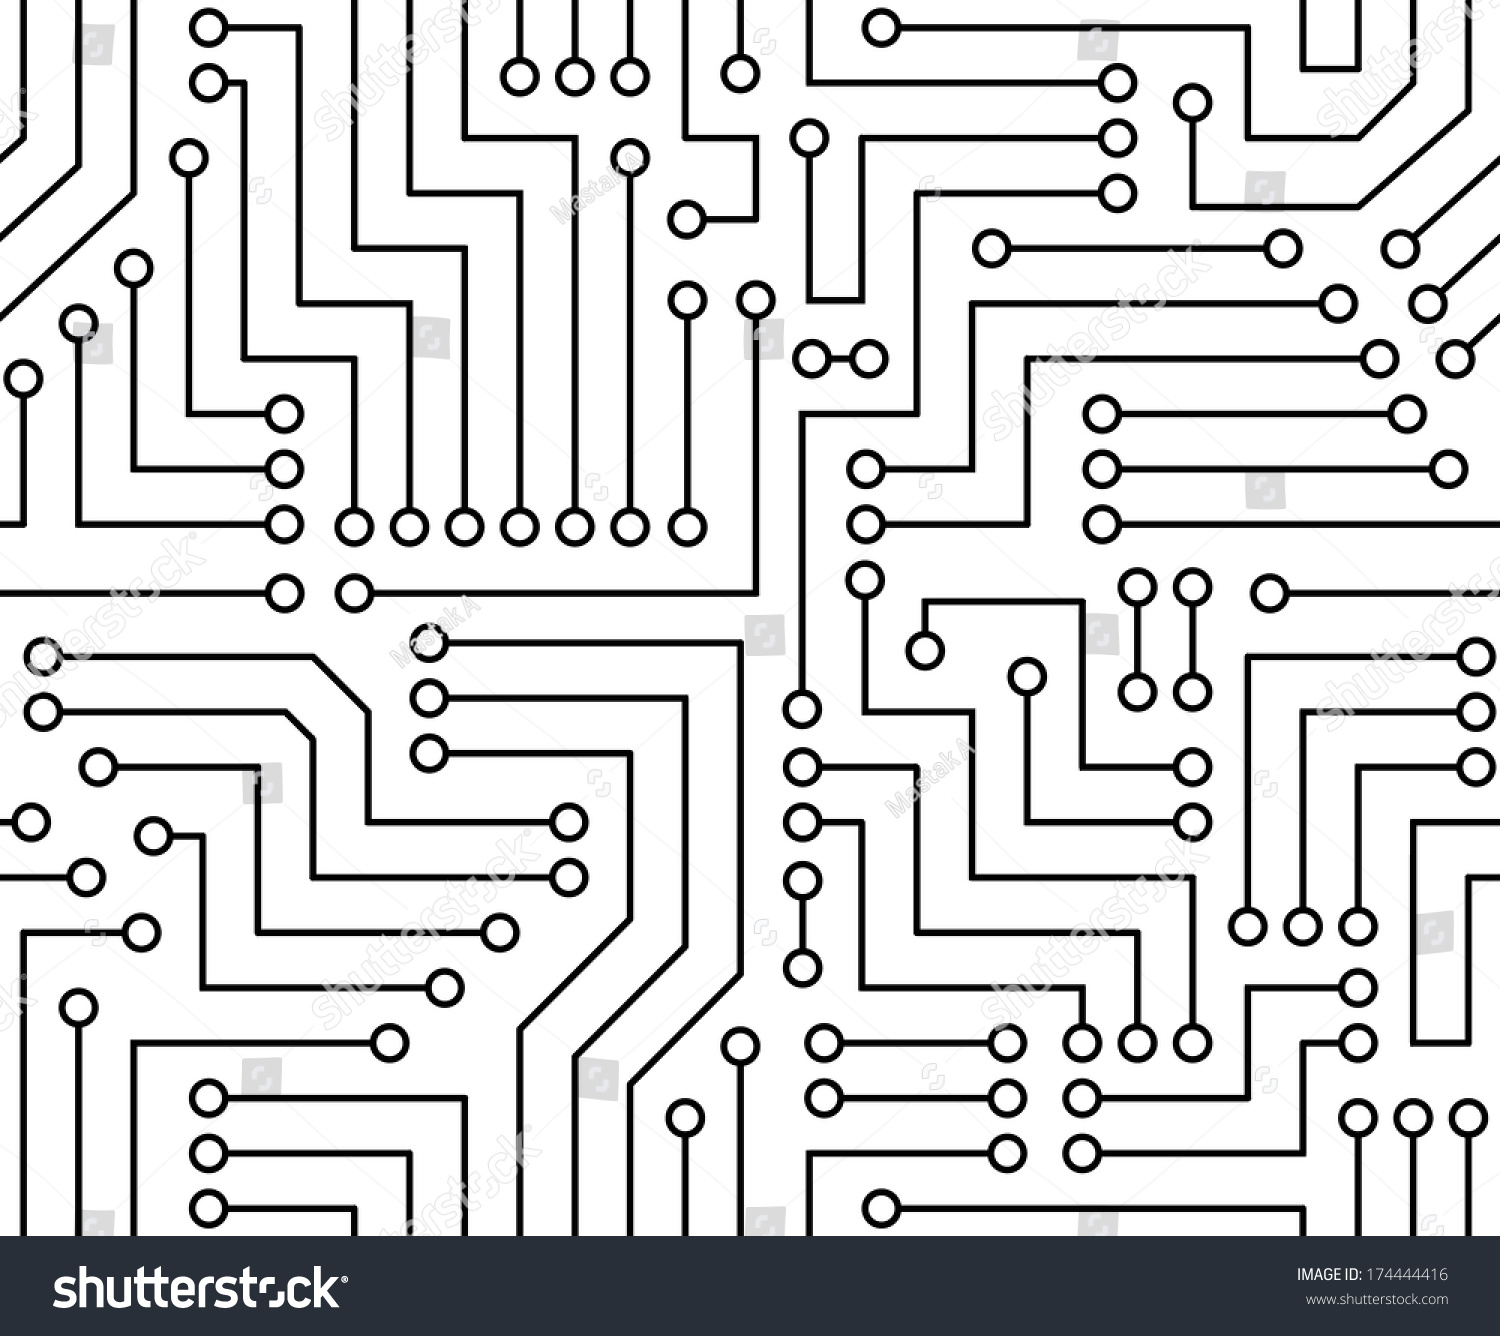 royaltyfree black and white printed circuit board